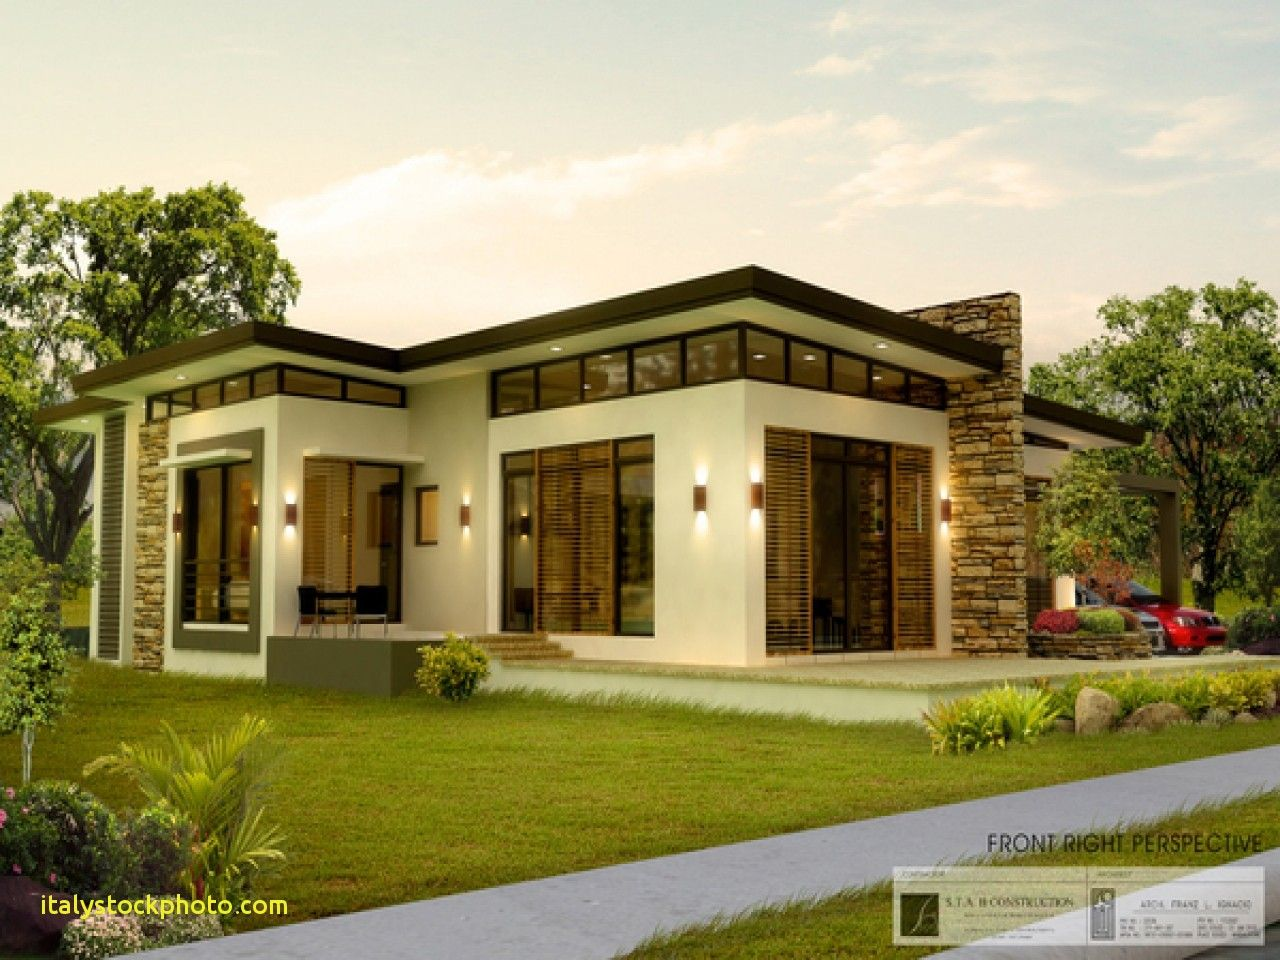 Bungalow house design pictures in philippine plans philippines small two bedroom also best modern inspirations bestmodernhouseinspirations rh pinterest